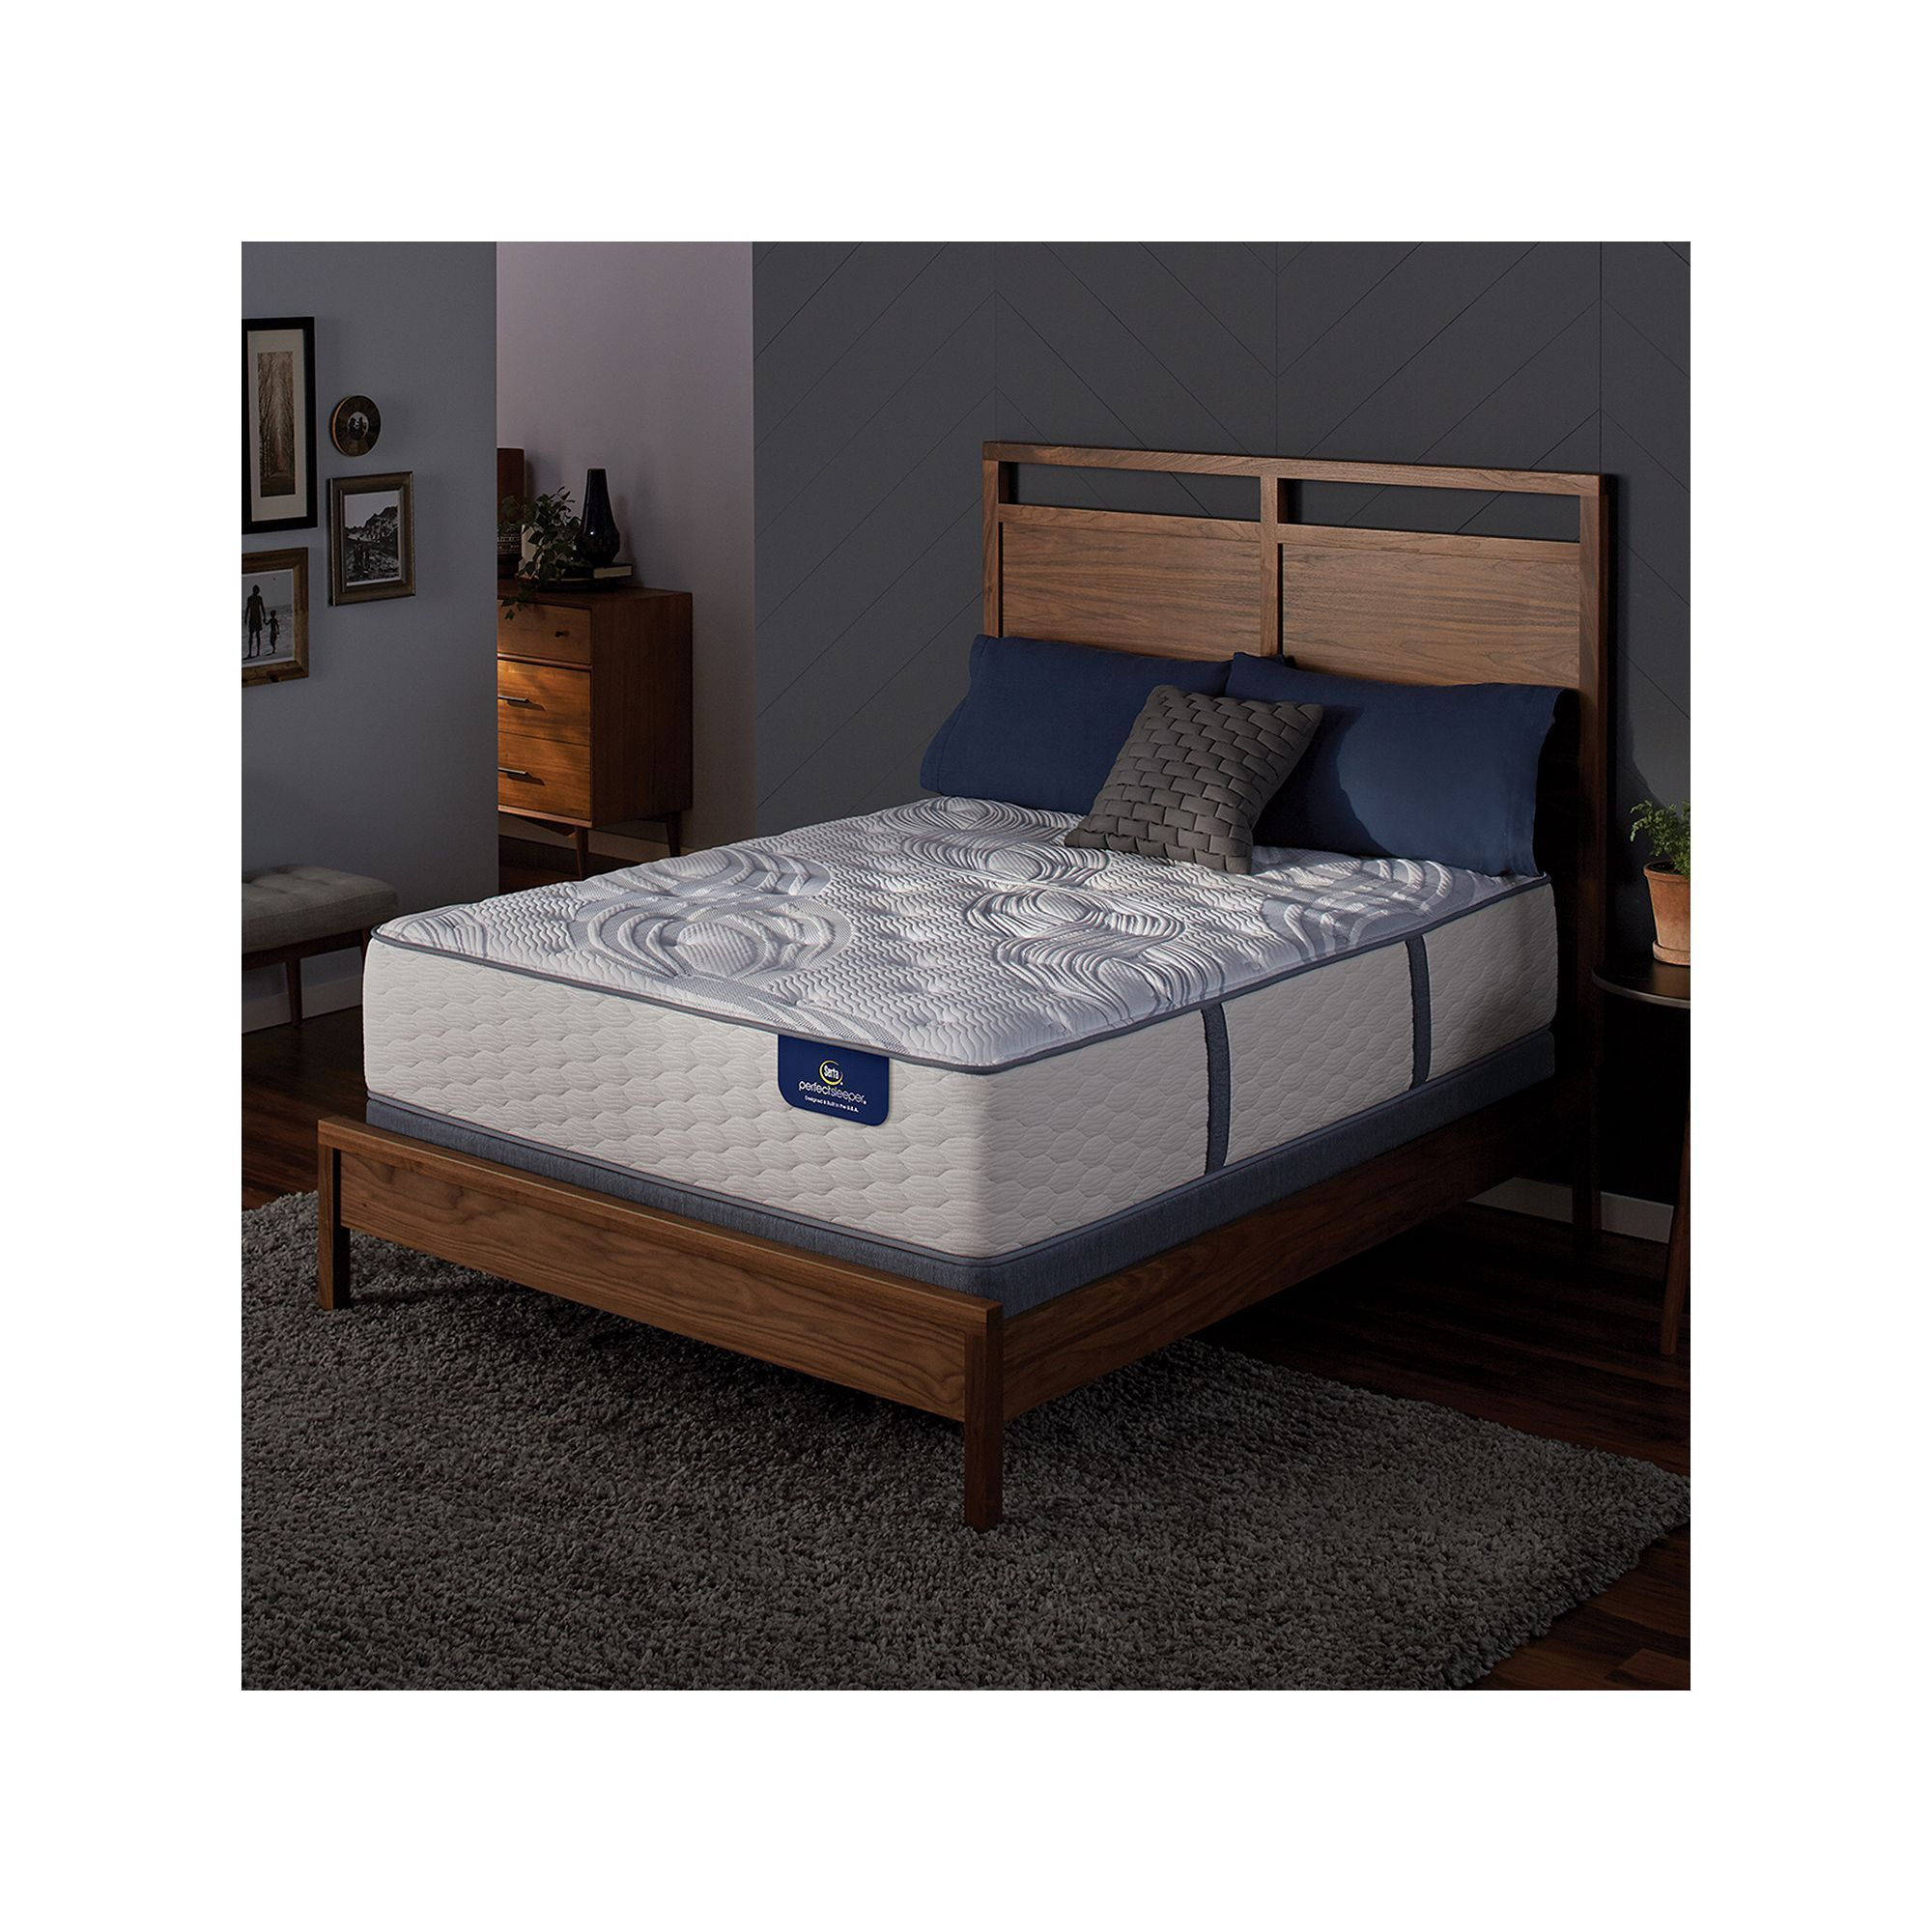 New Do I Need A Boxspring With Ikea Bed Frame Insured By